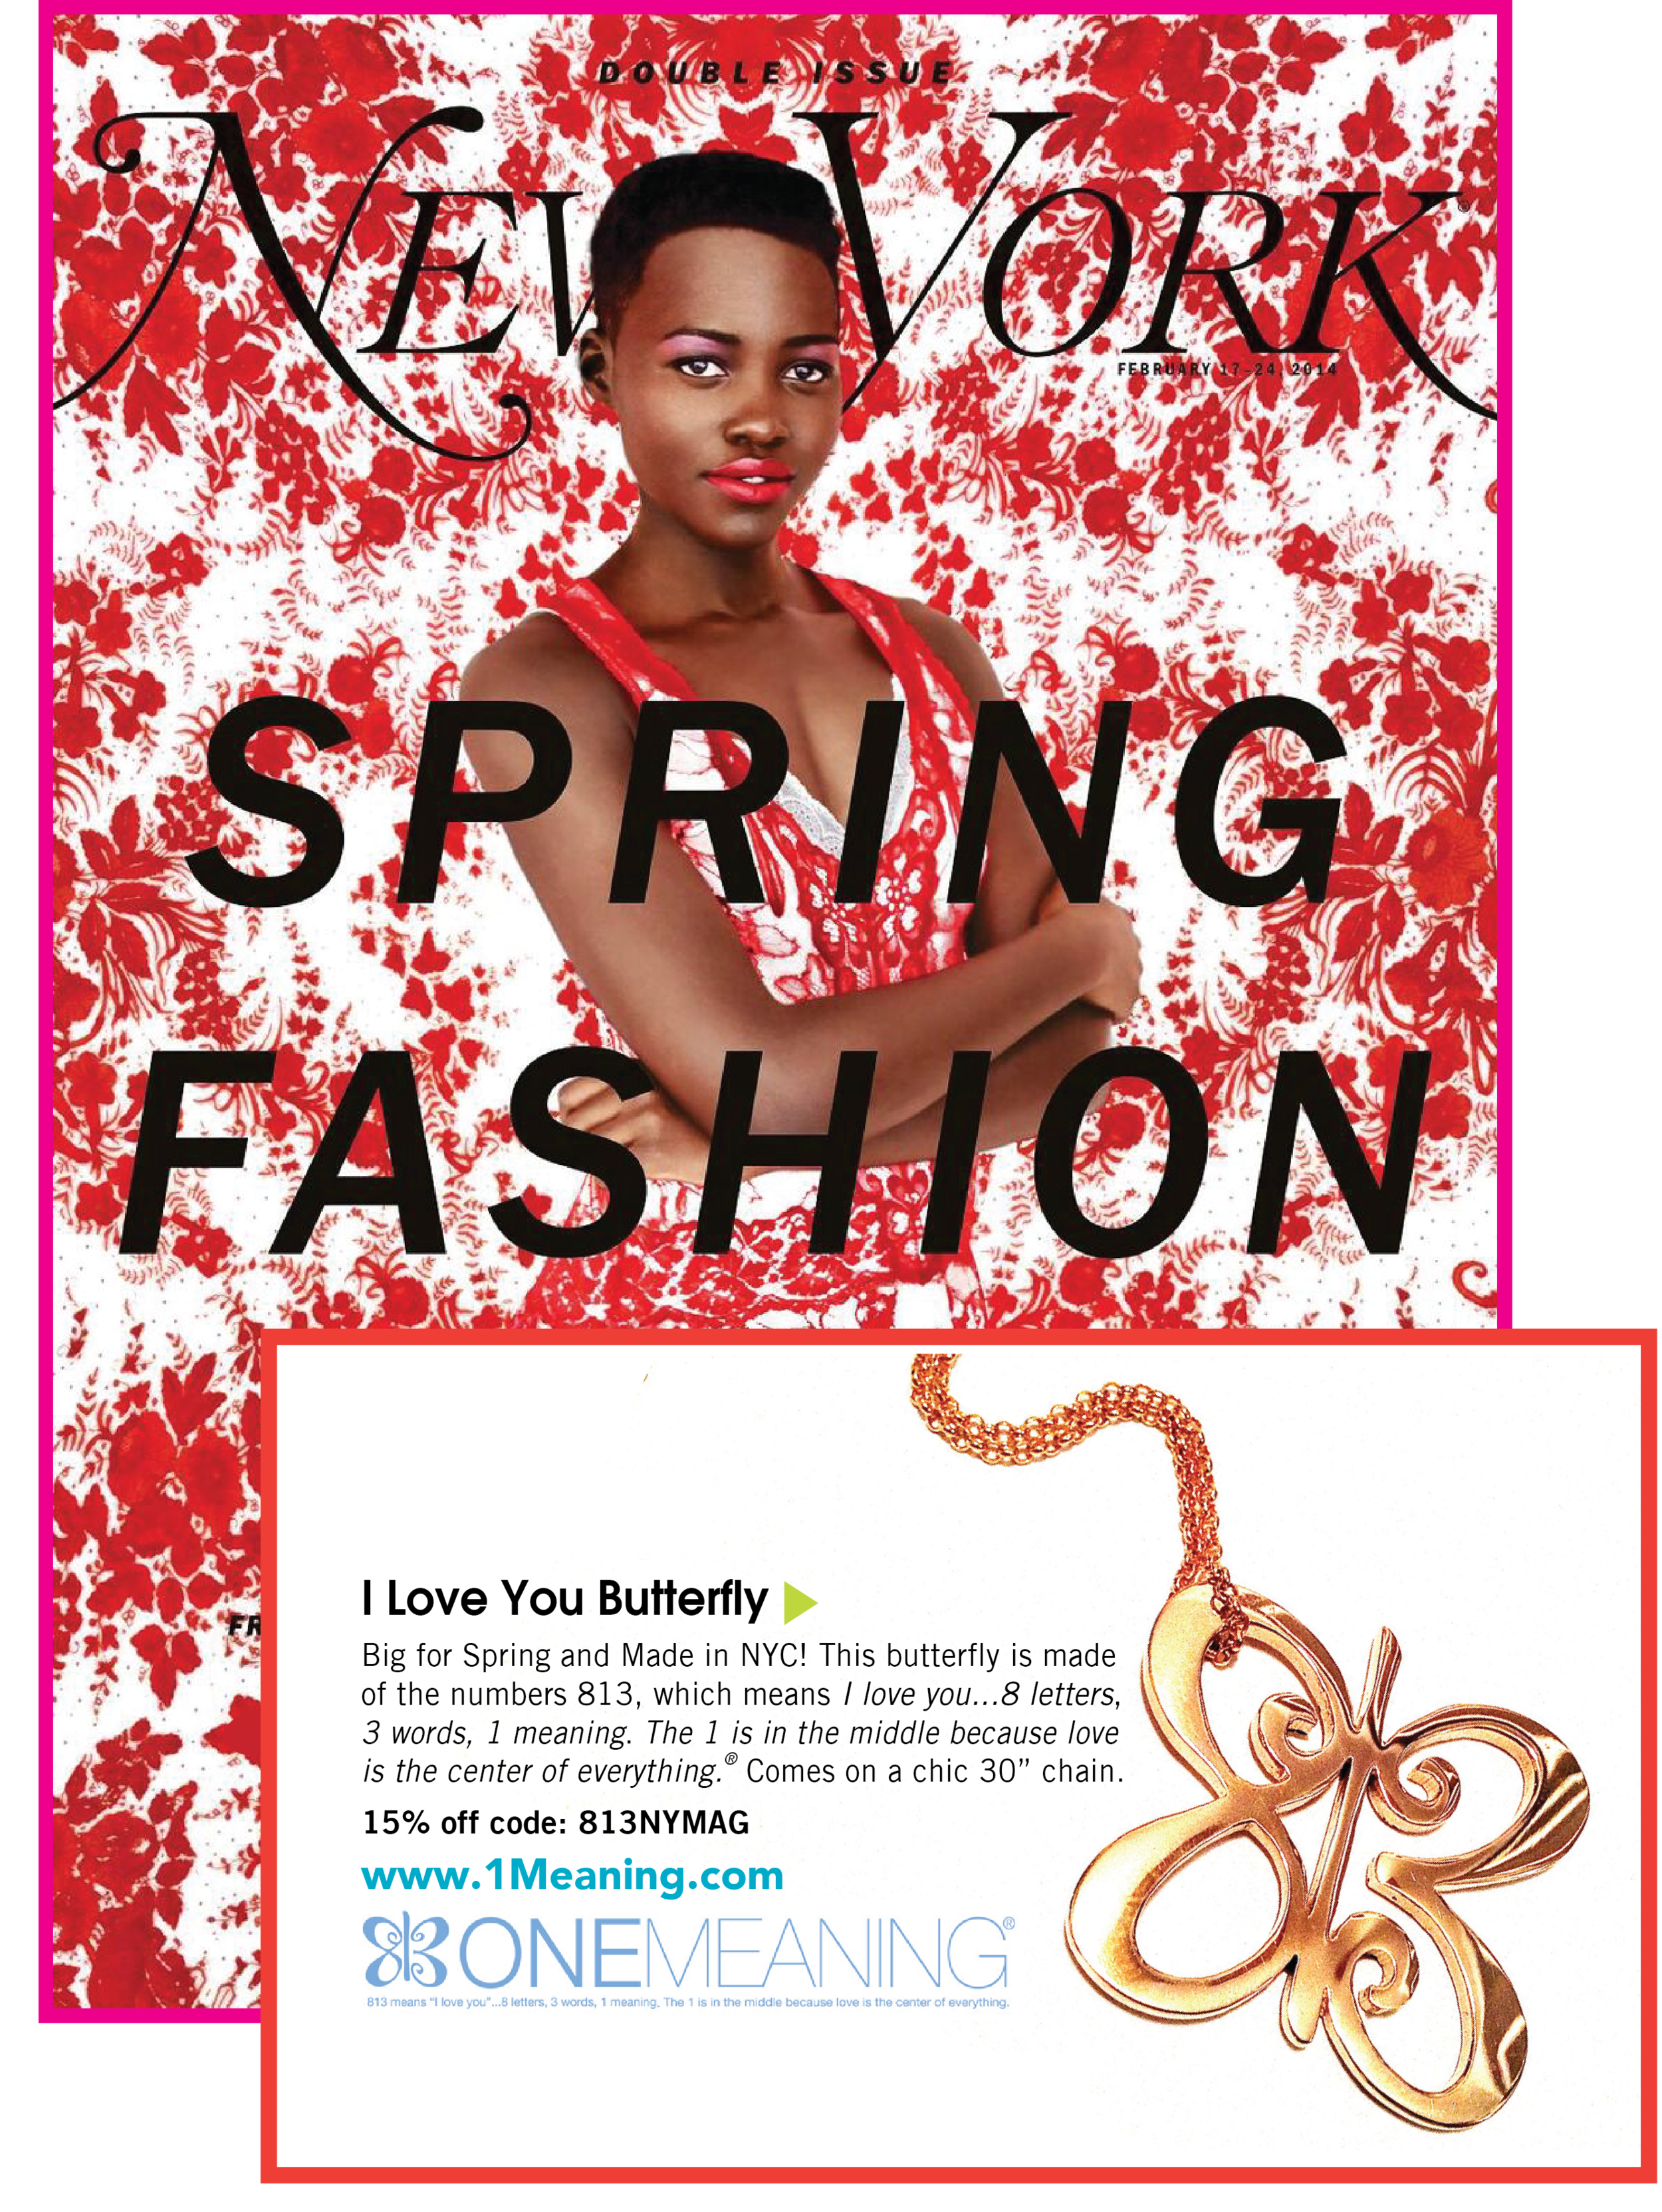 New York Magazine's Spring 2014 Fashion Issue shows our Big Love Butterfly!